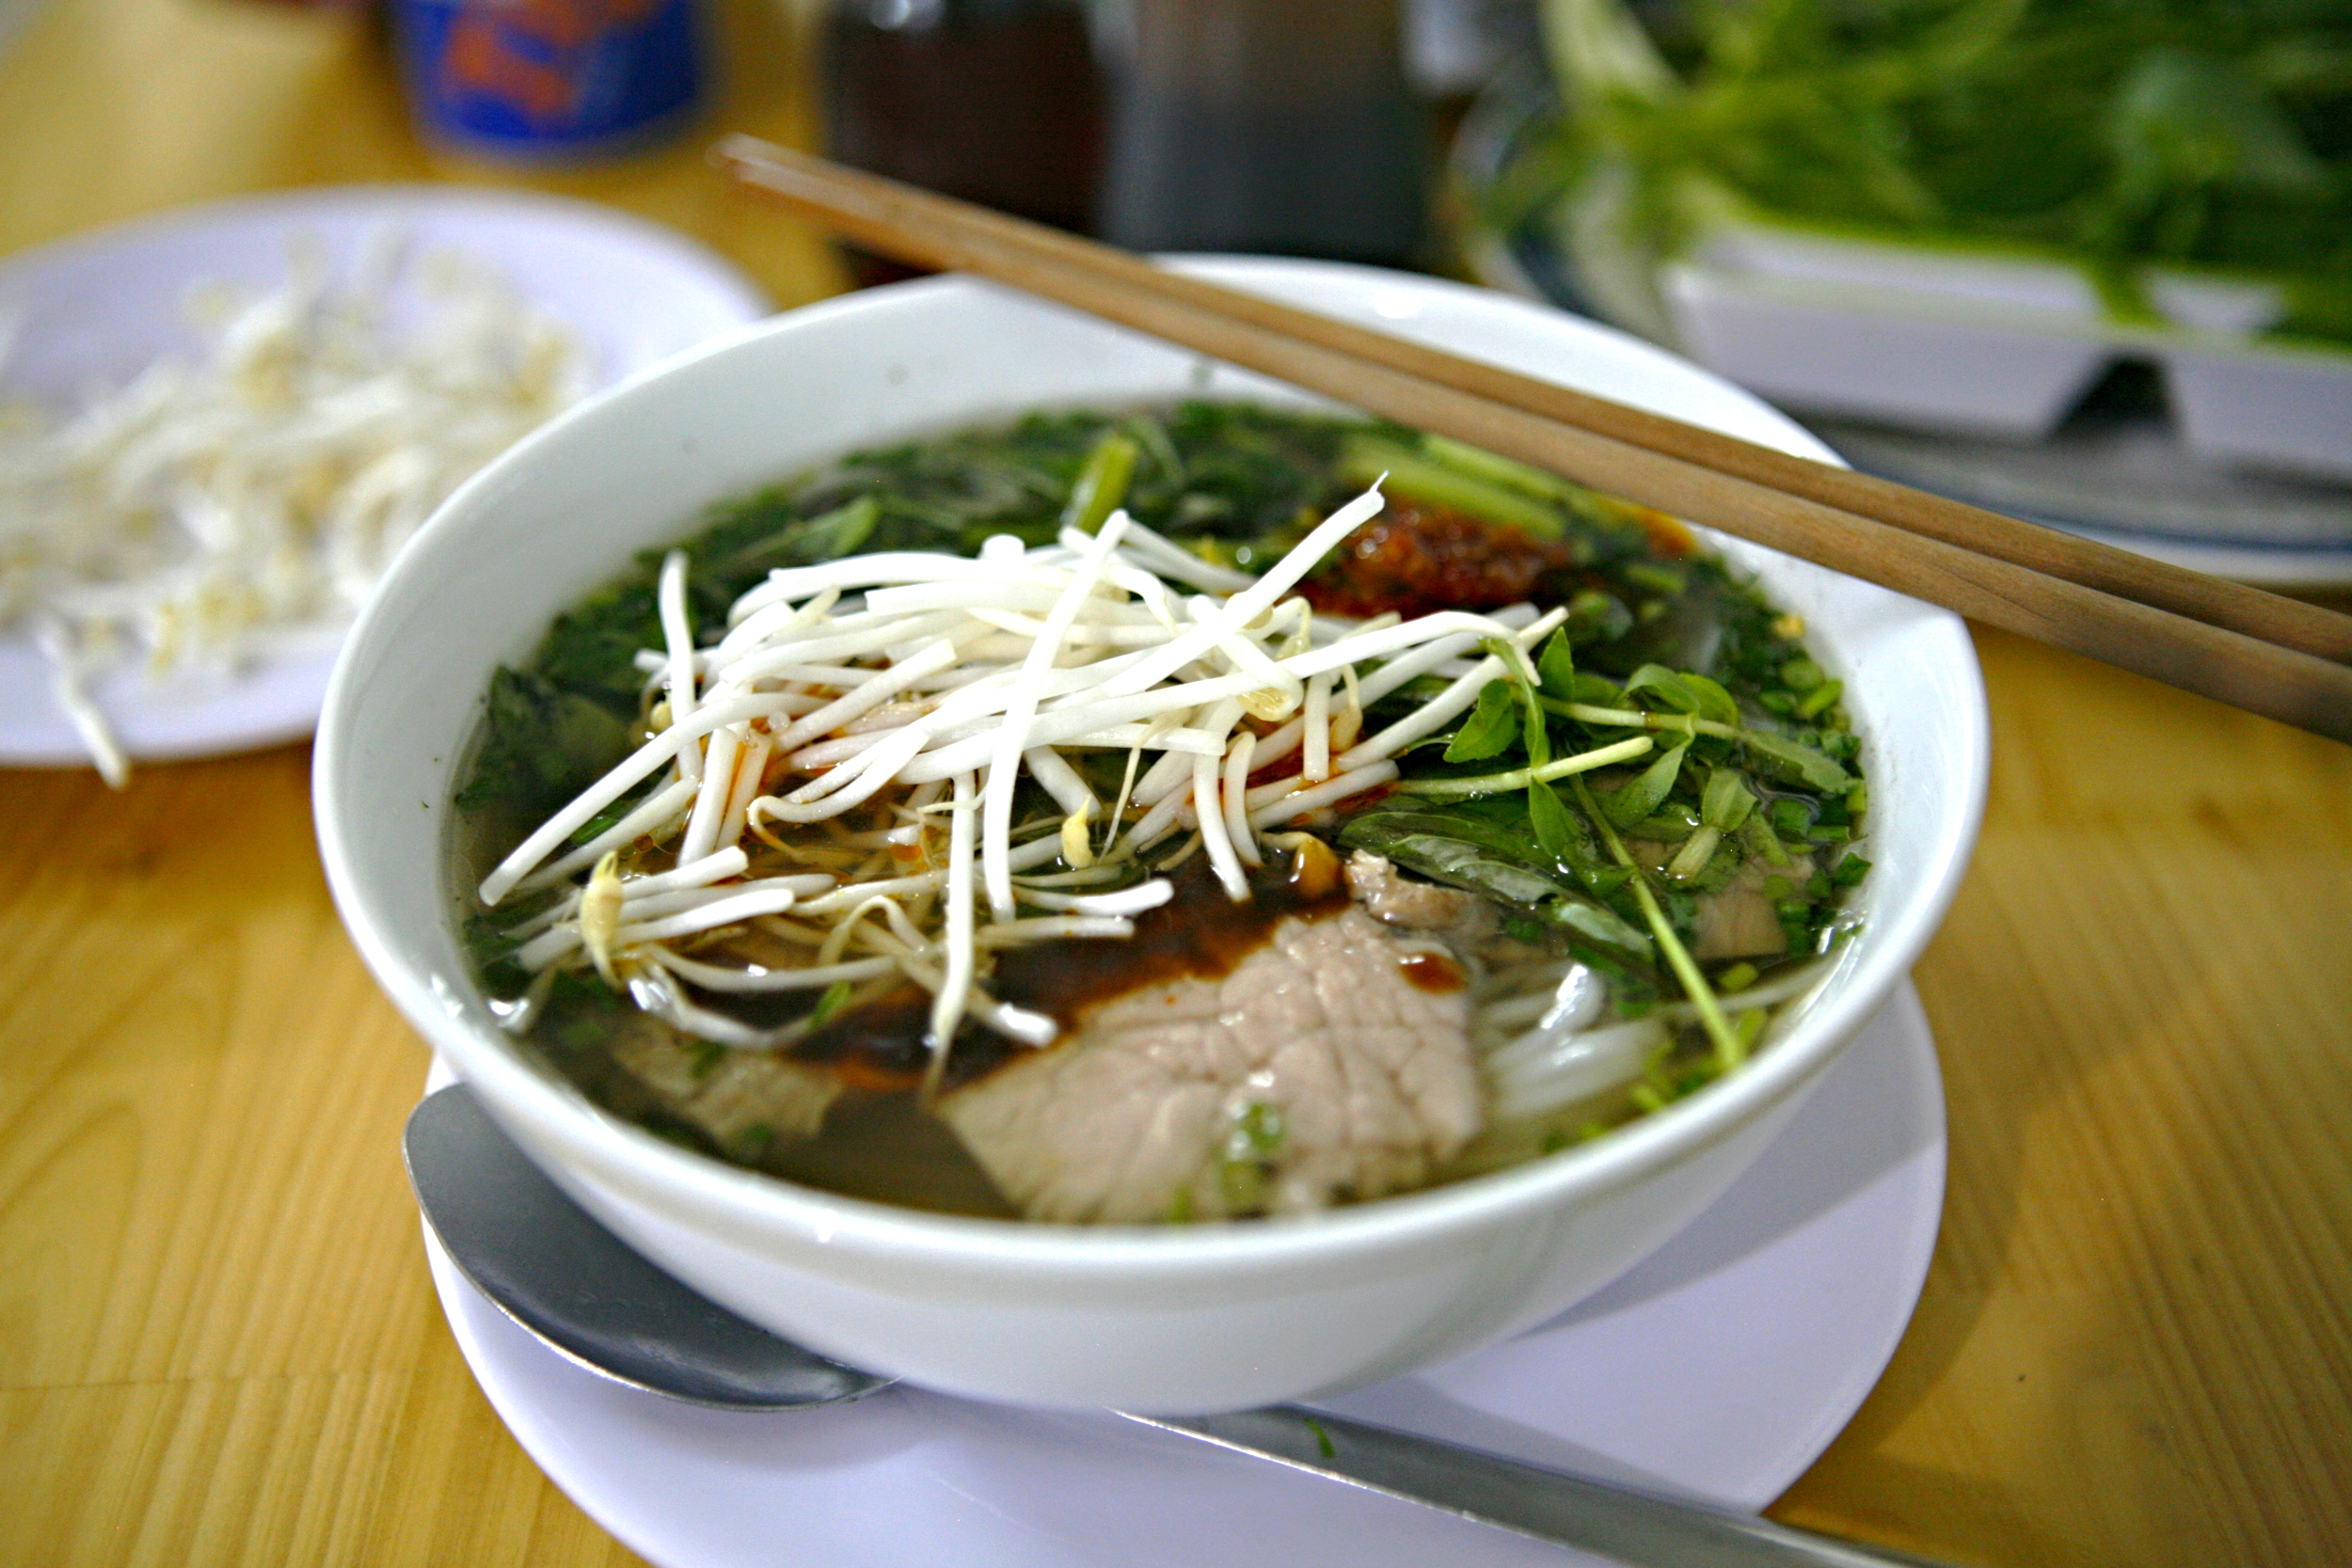 A bowl of piping hot pho bo - garnished with fresh basil, culantro, mung bean sprouts and chili paste